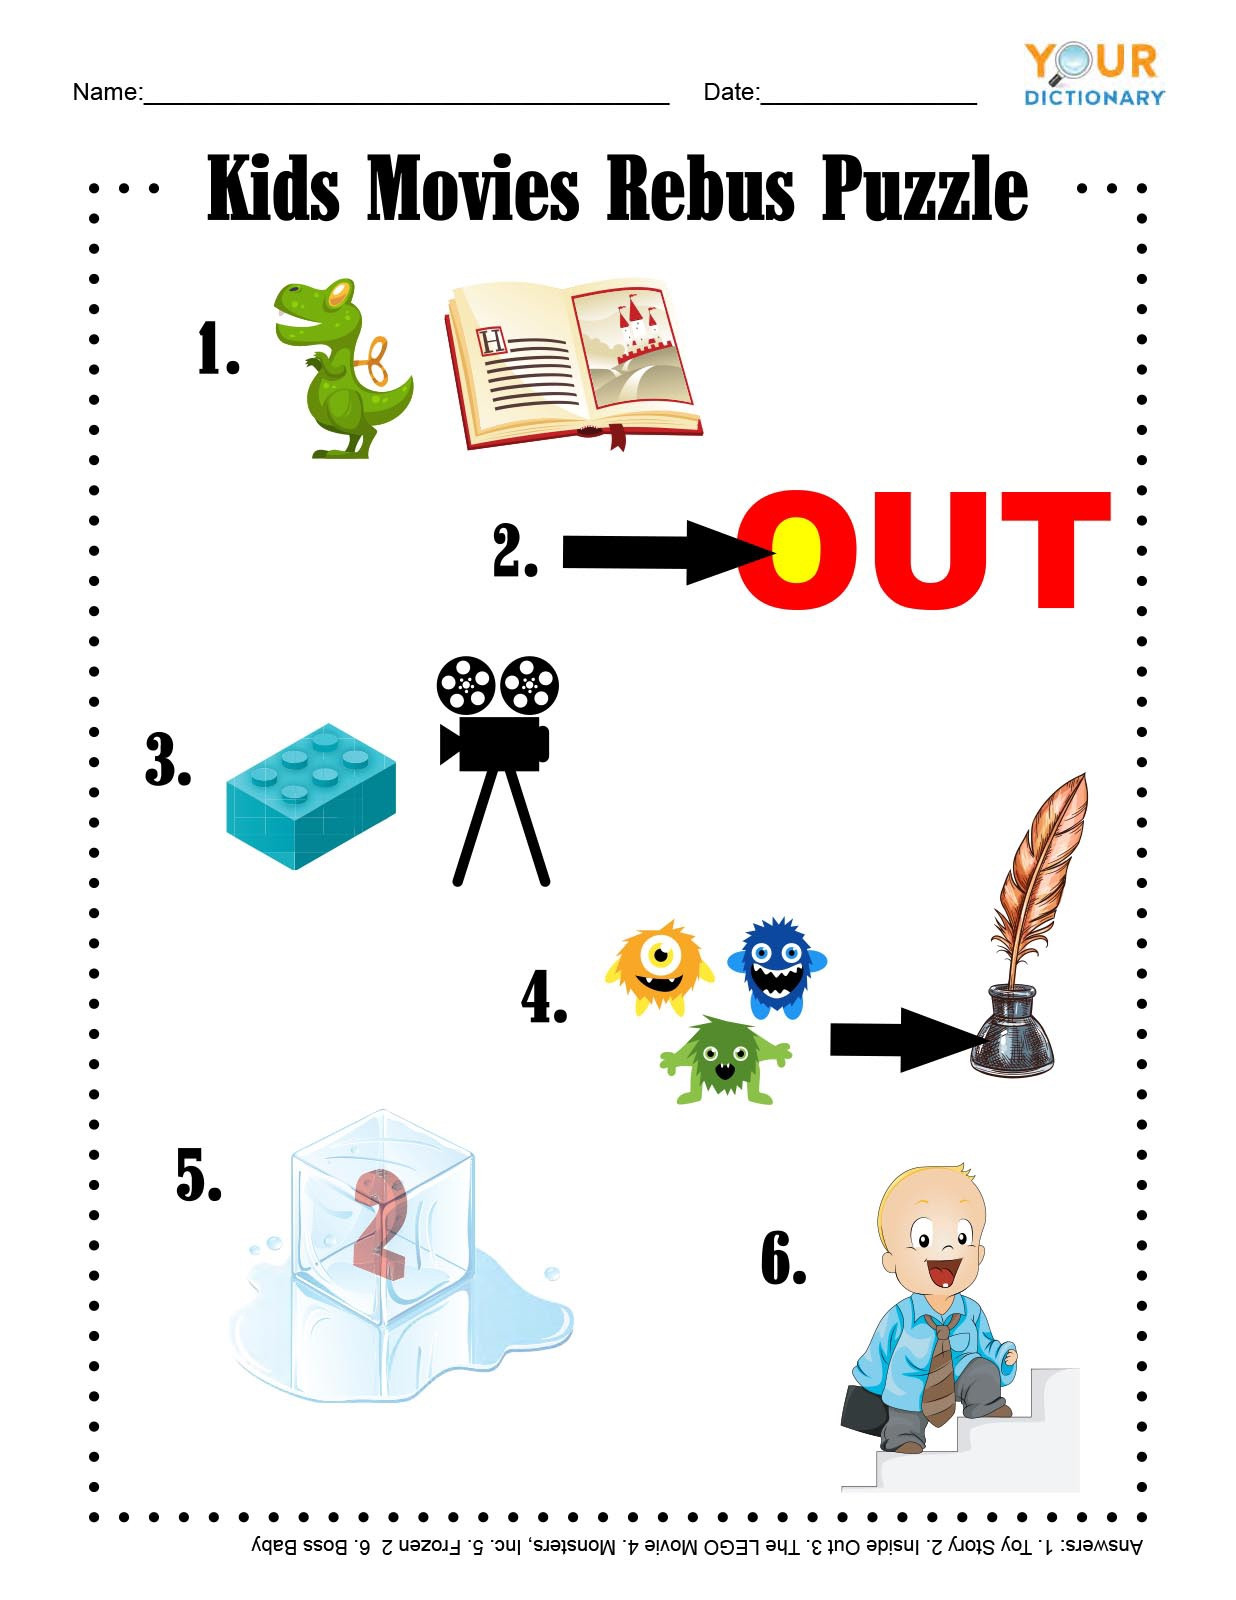 Free Printable Rebus Puzzles Fun & Free Printable Word Games for Kids